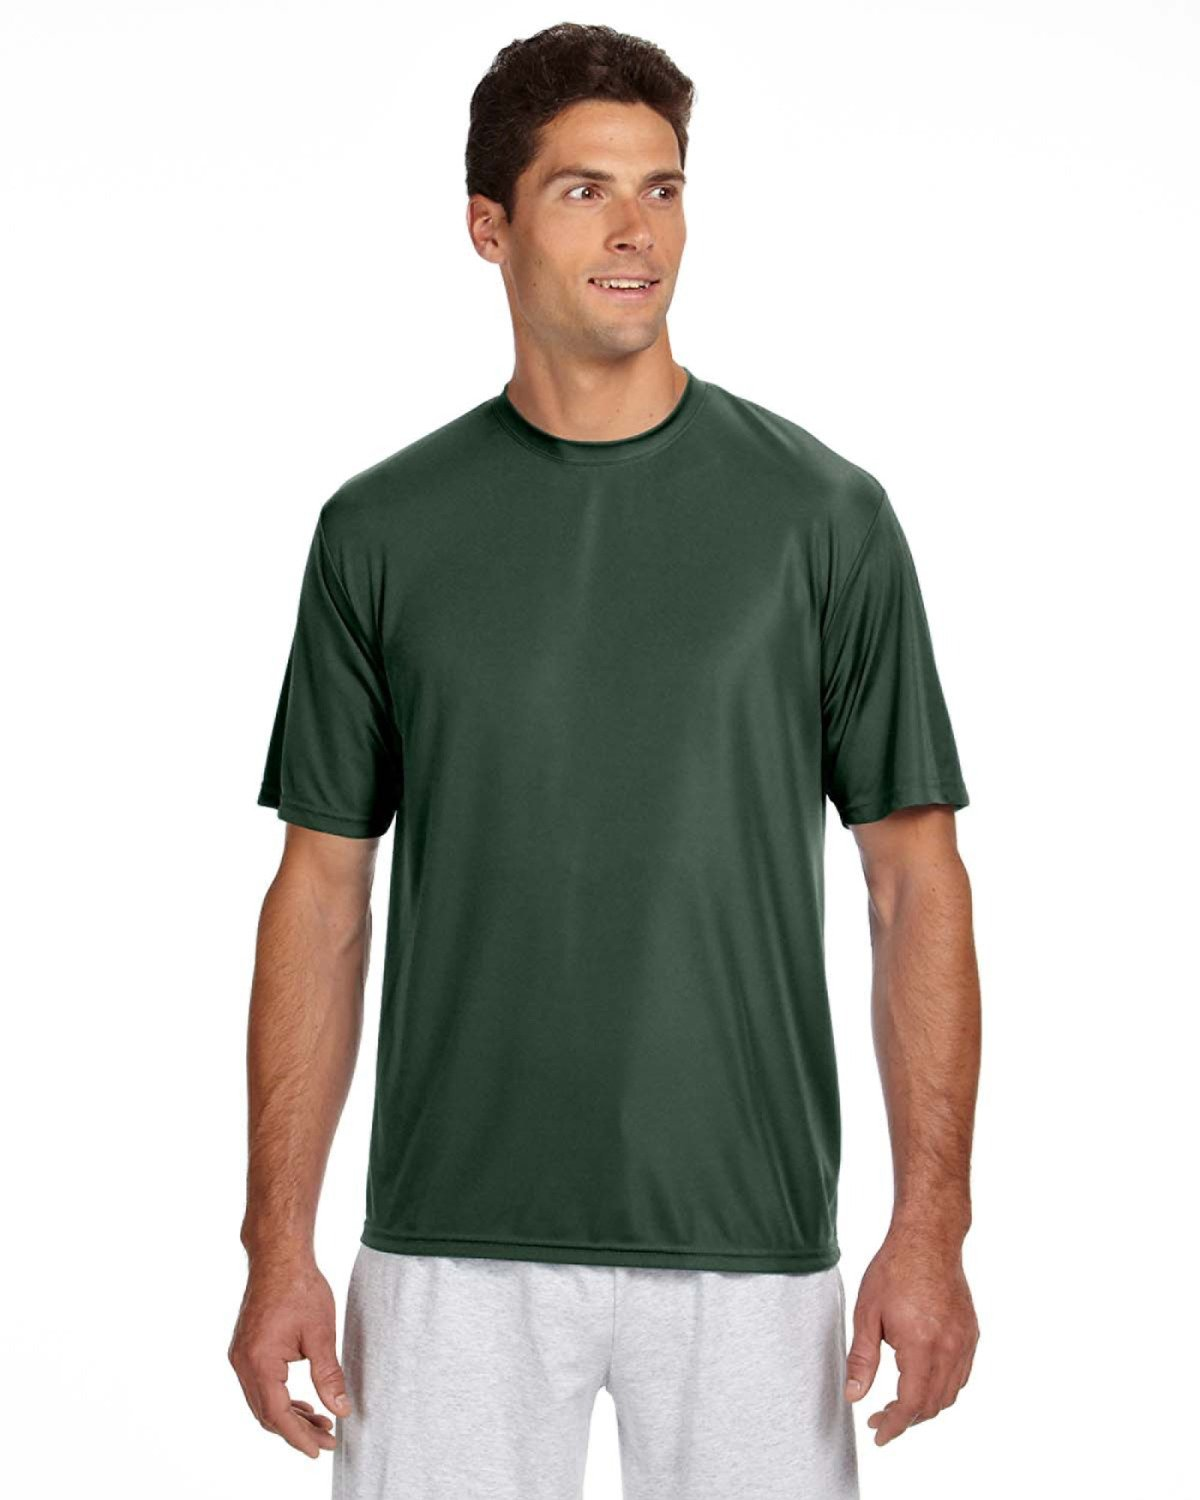 A4 Men's Cooling Performance T-Shirt FOREST GREEN